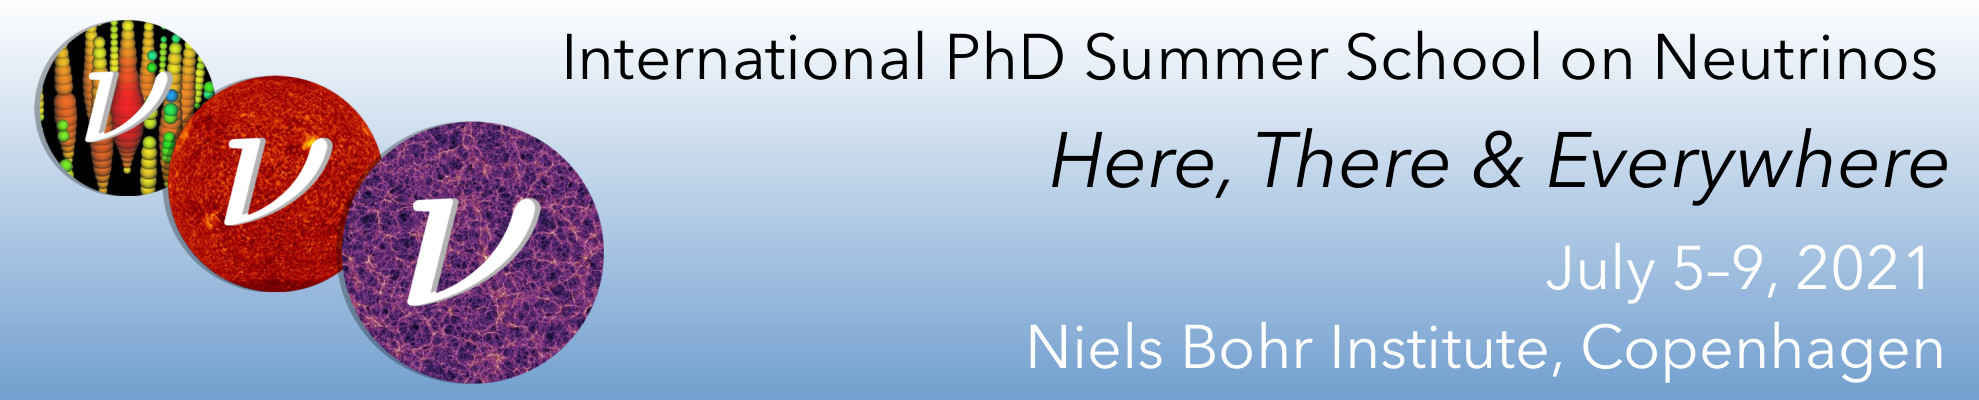 NBIA Summer School on Neutrinos: Here, There & Everywhere